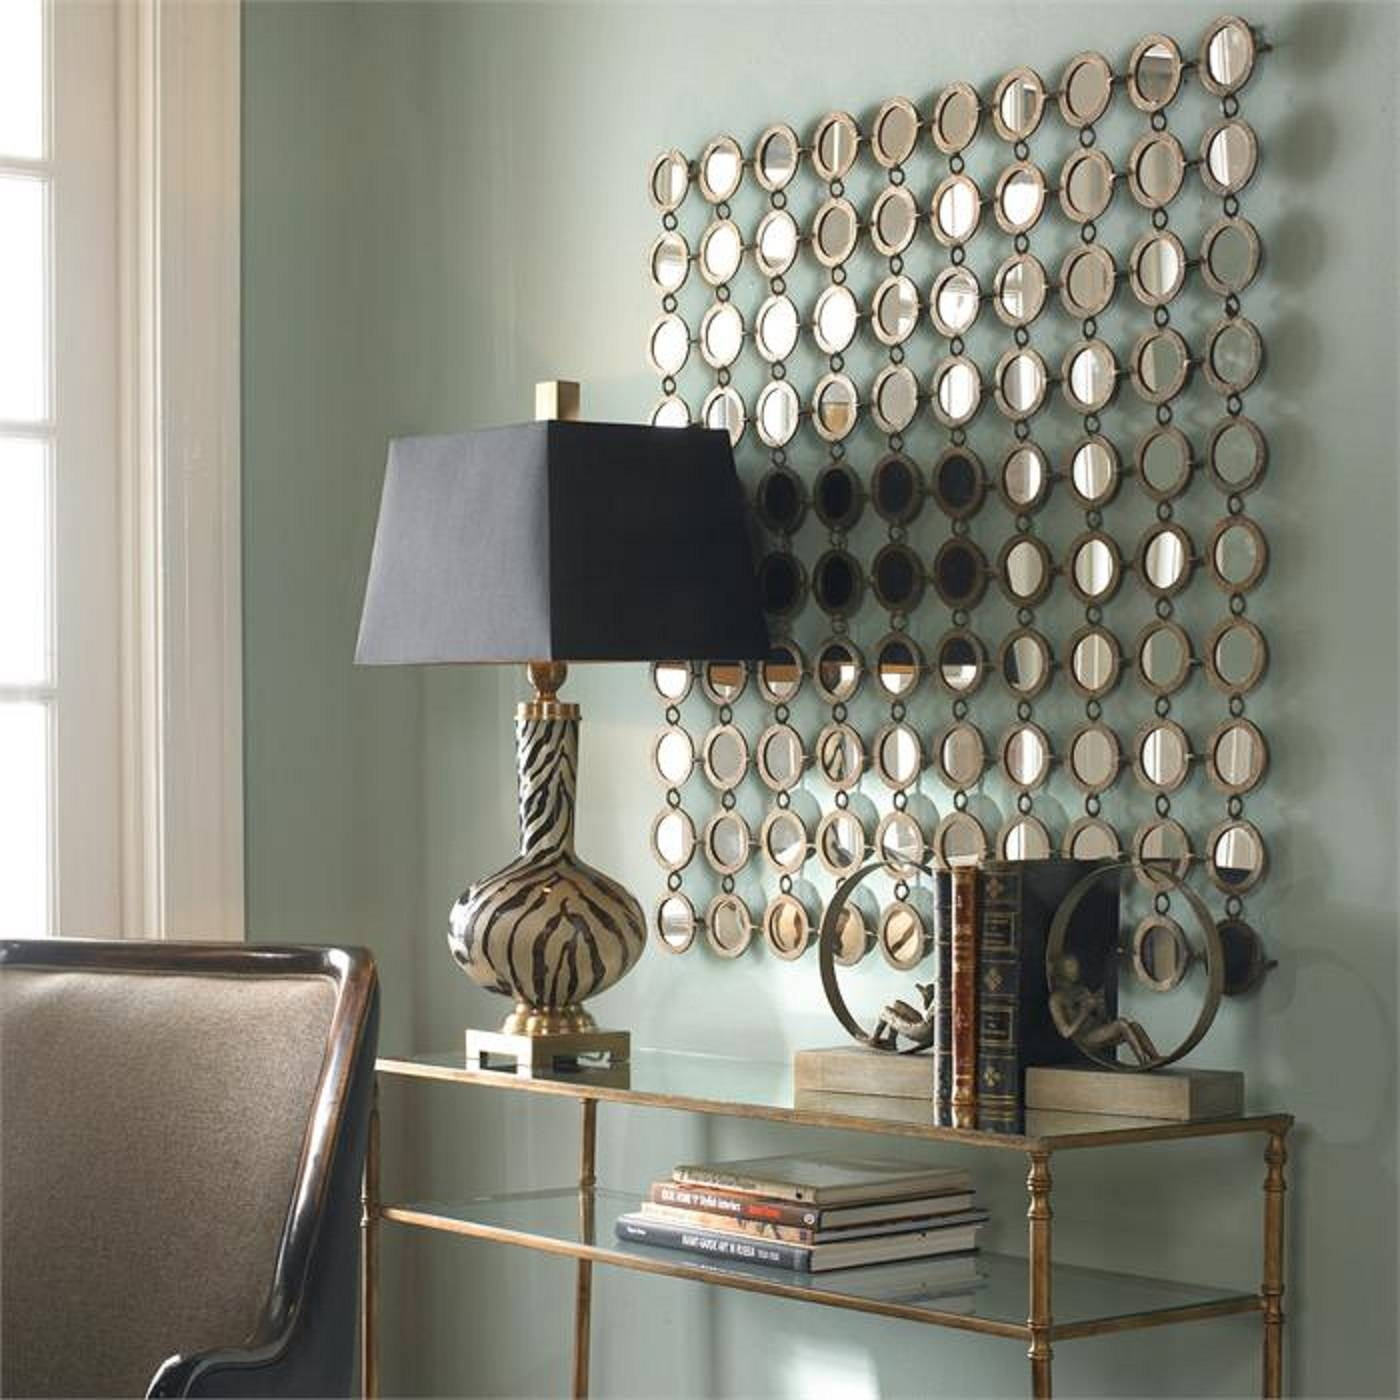 Metal Mirror Wall Decor | Jeffsbakery Basement & Mattress intended for Champagne Mirrors (Image 18 of 25)